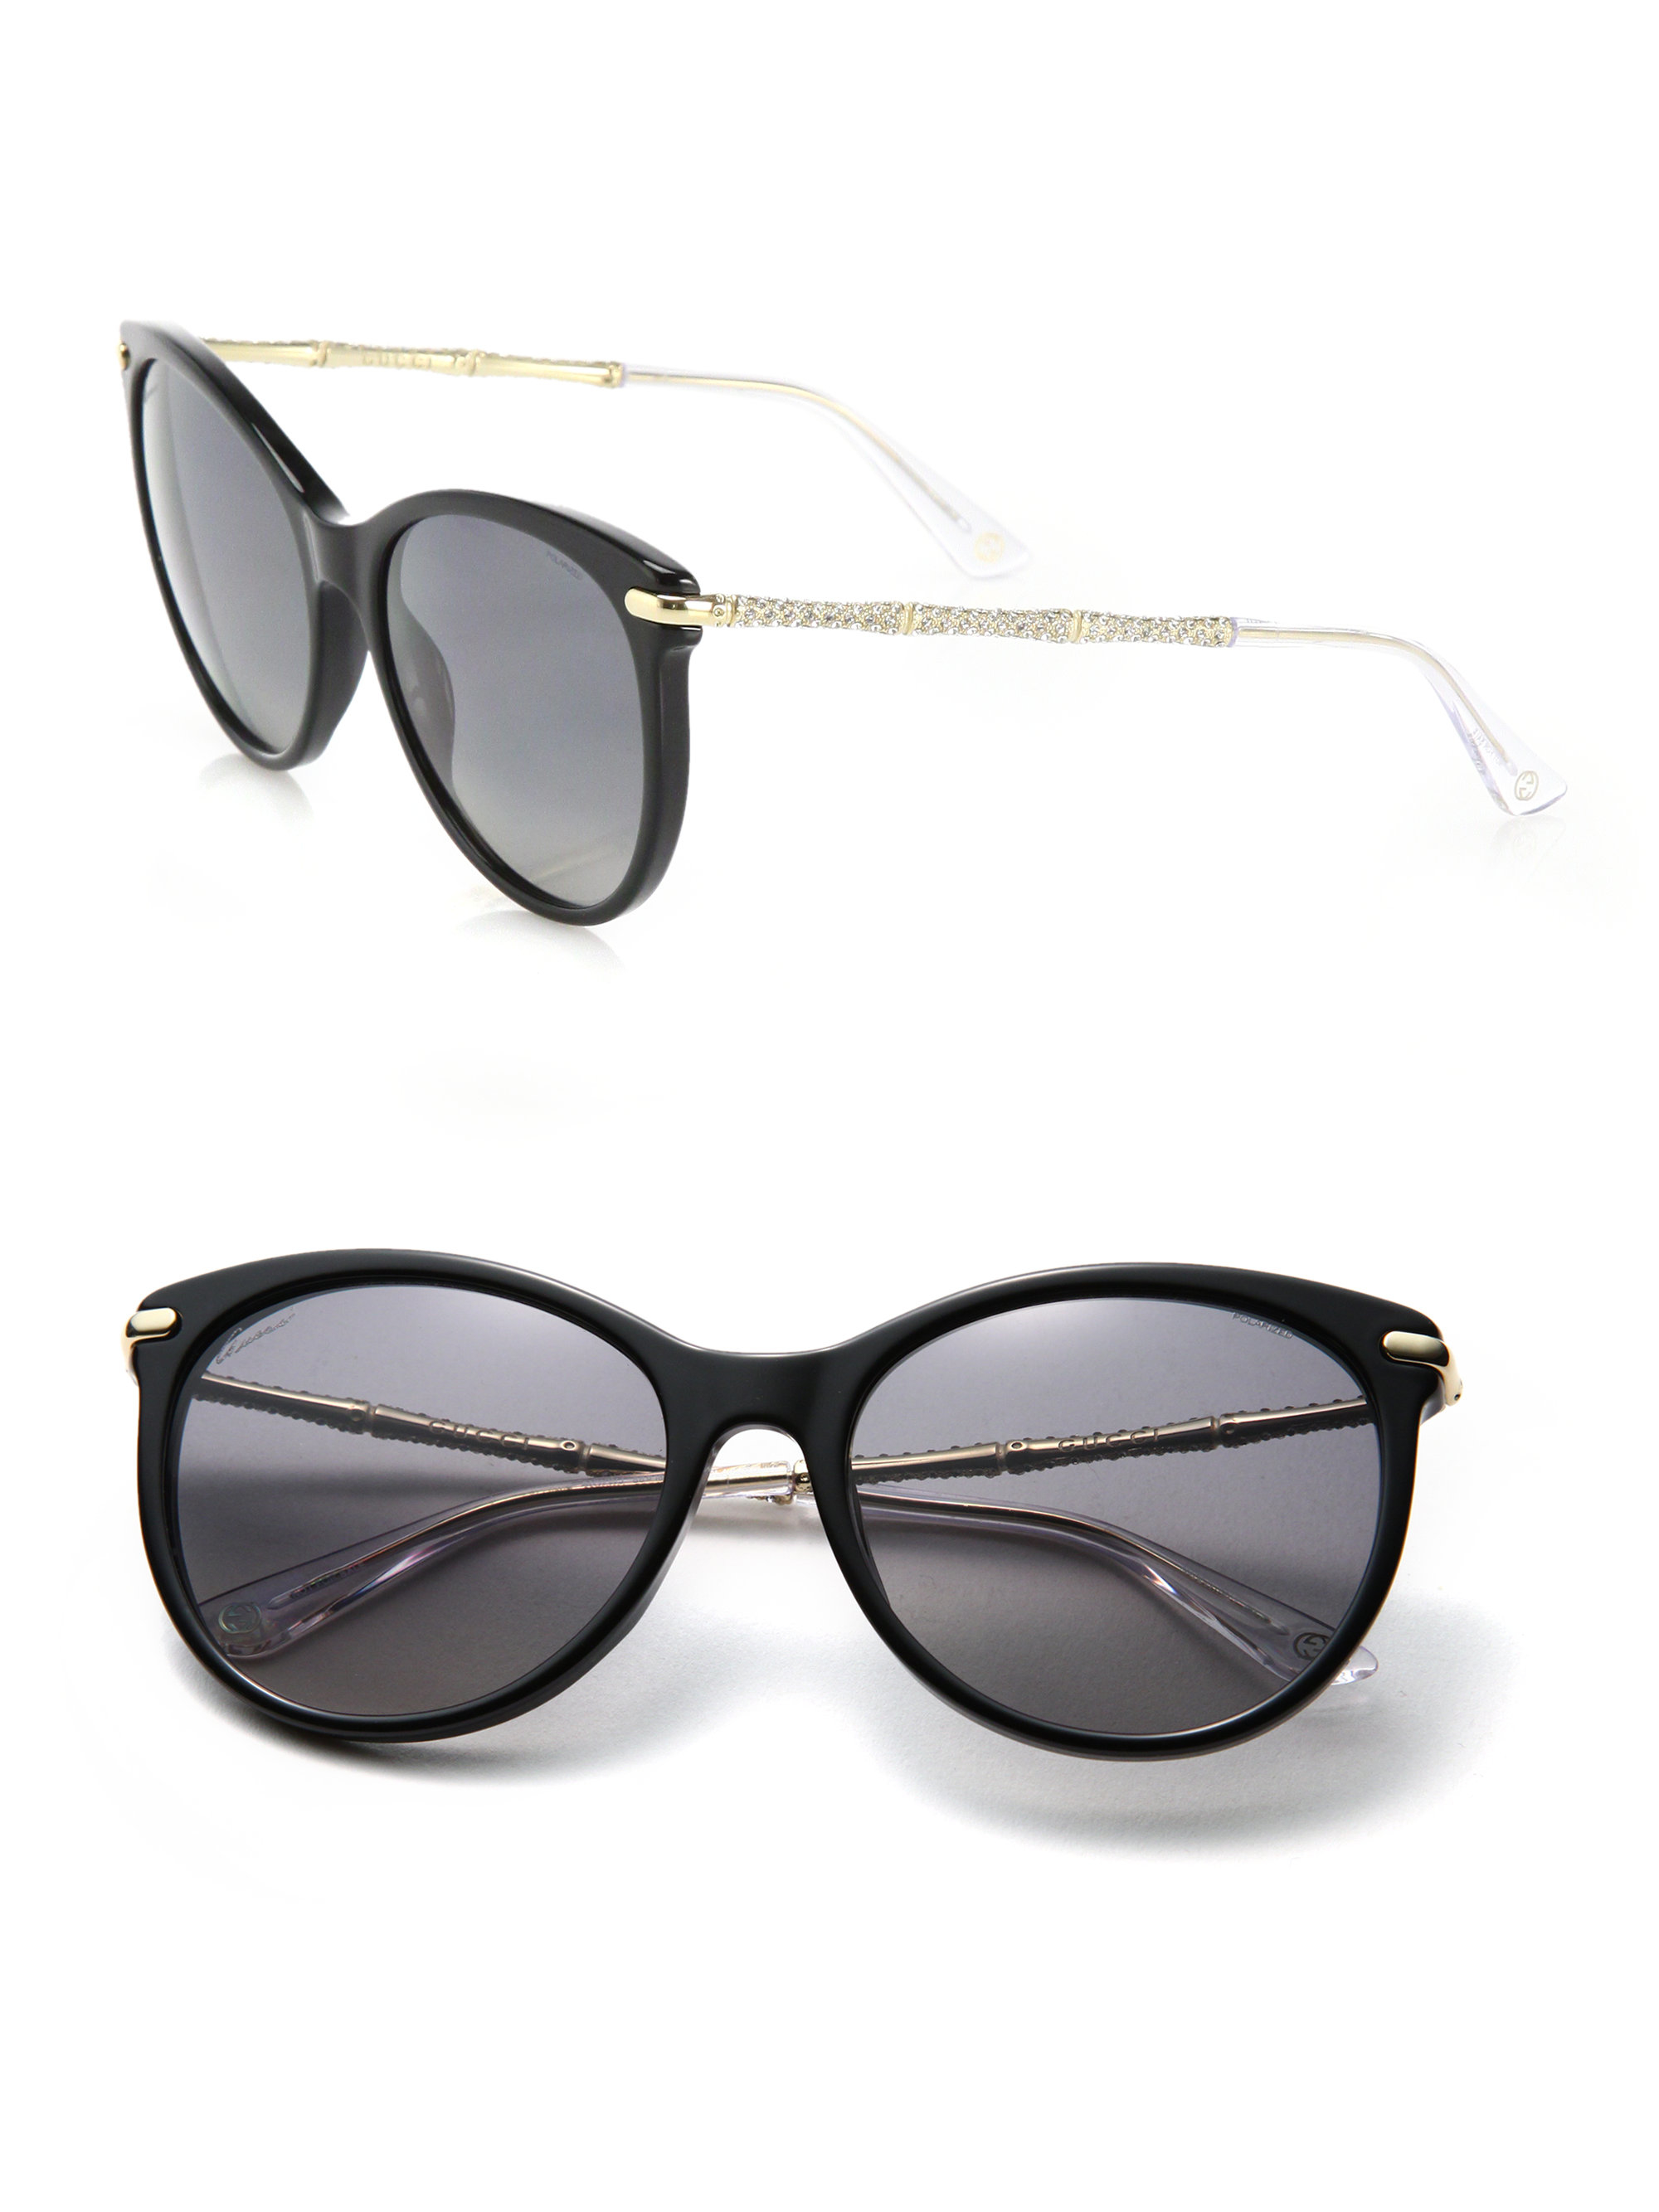 Gucci Sunglasses Bamboo Frame